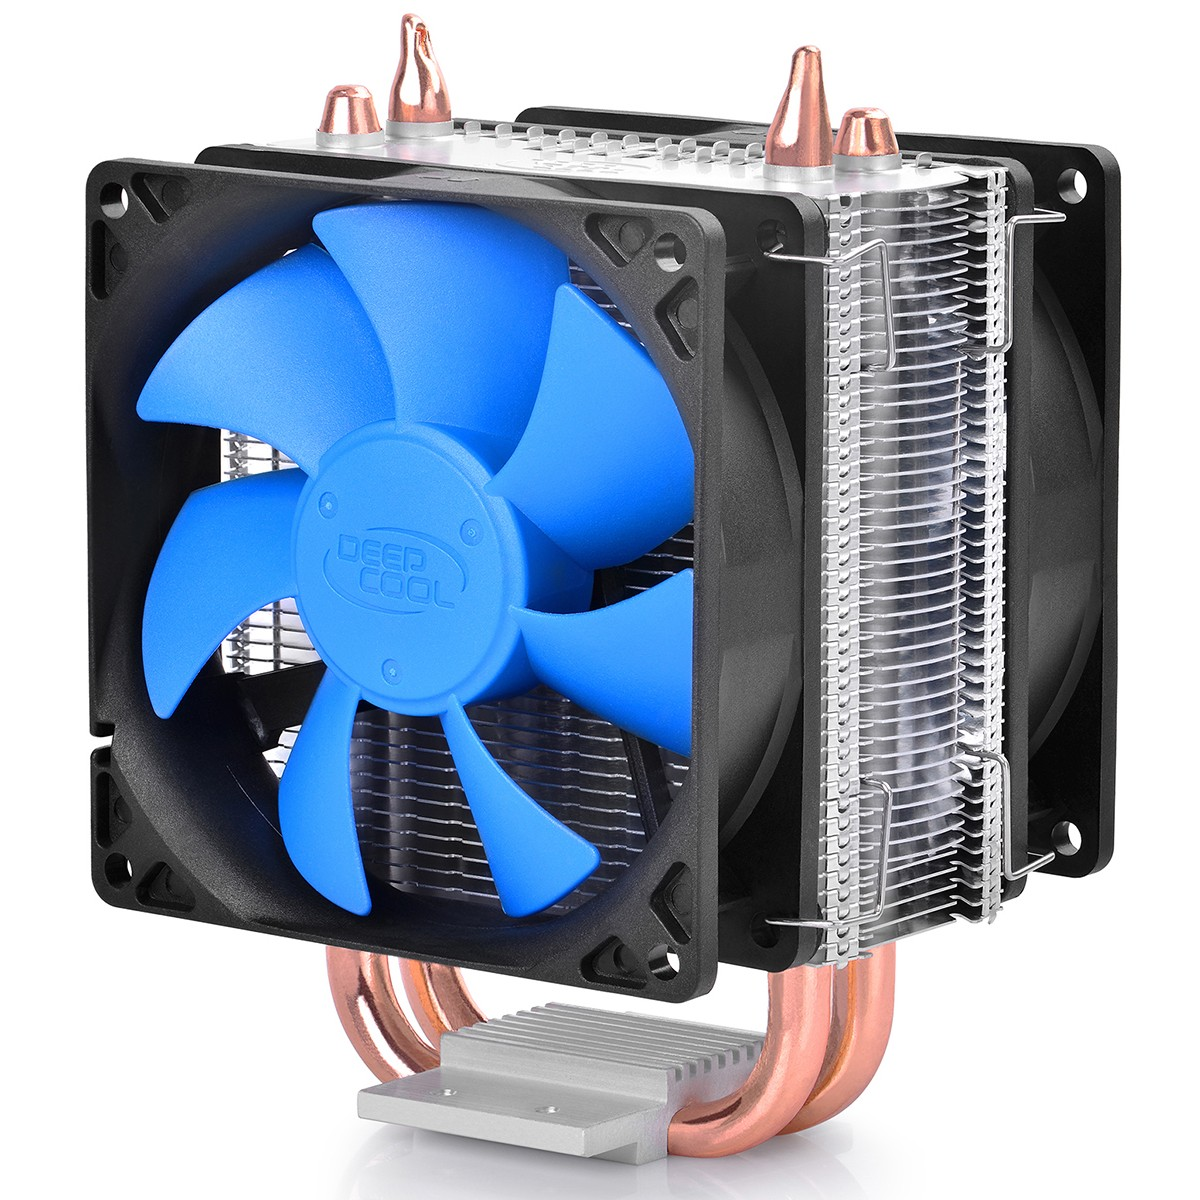 Cooler para Processador DeepCool Ice Blade, Blue 92mm, Intel-AMD, DP-MC8H2-IB200M